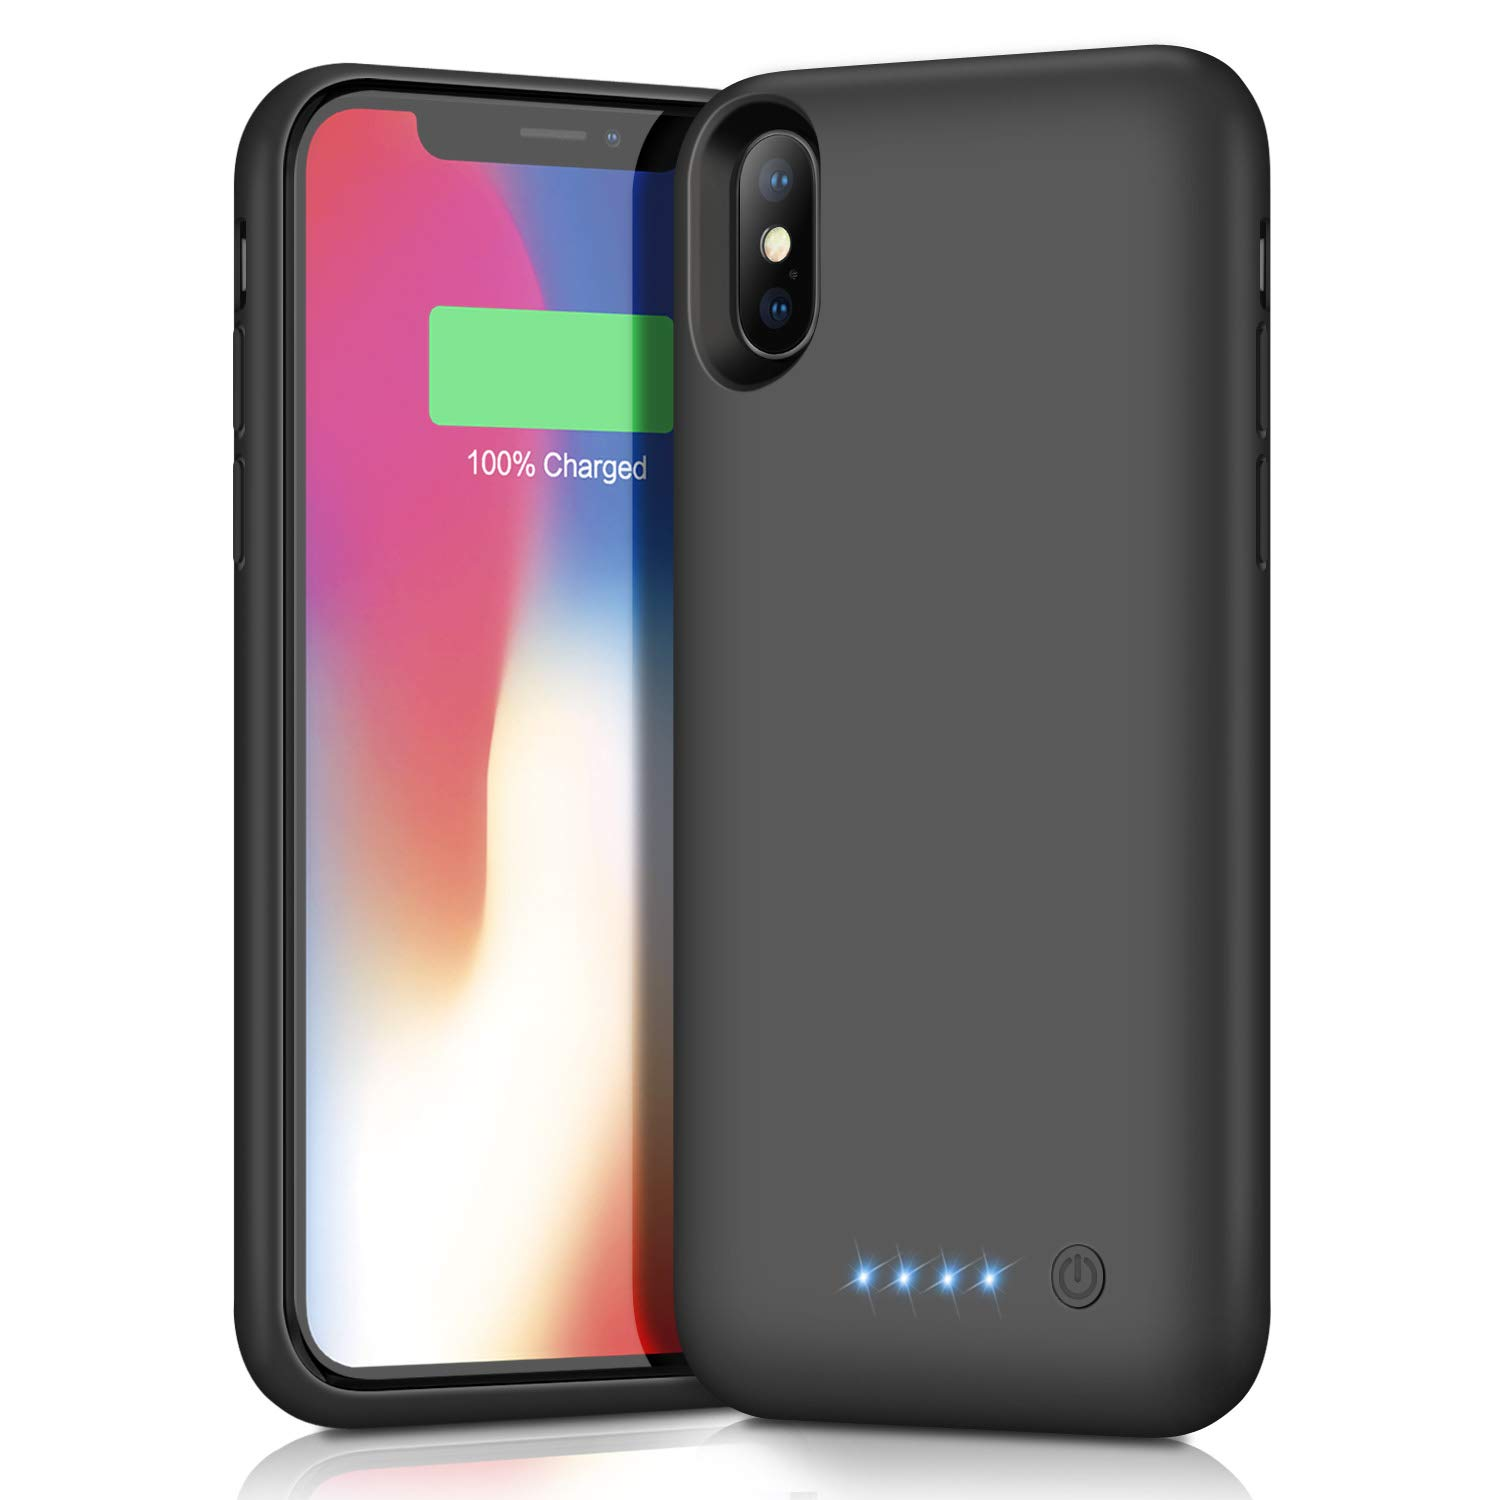 Trswyop Battery Case for iPhone XS/X/10,6500mAh Portable Rechargeable Charging Case External Battery Pack for Apple iPhone XS/X/10 Protective Charger Case Backup Battery Power Bank (5.8 inch) (Black)